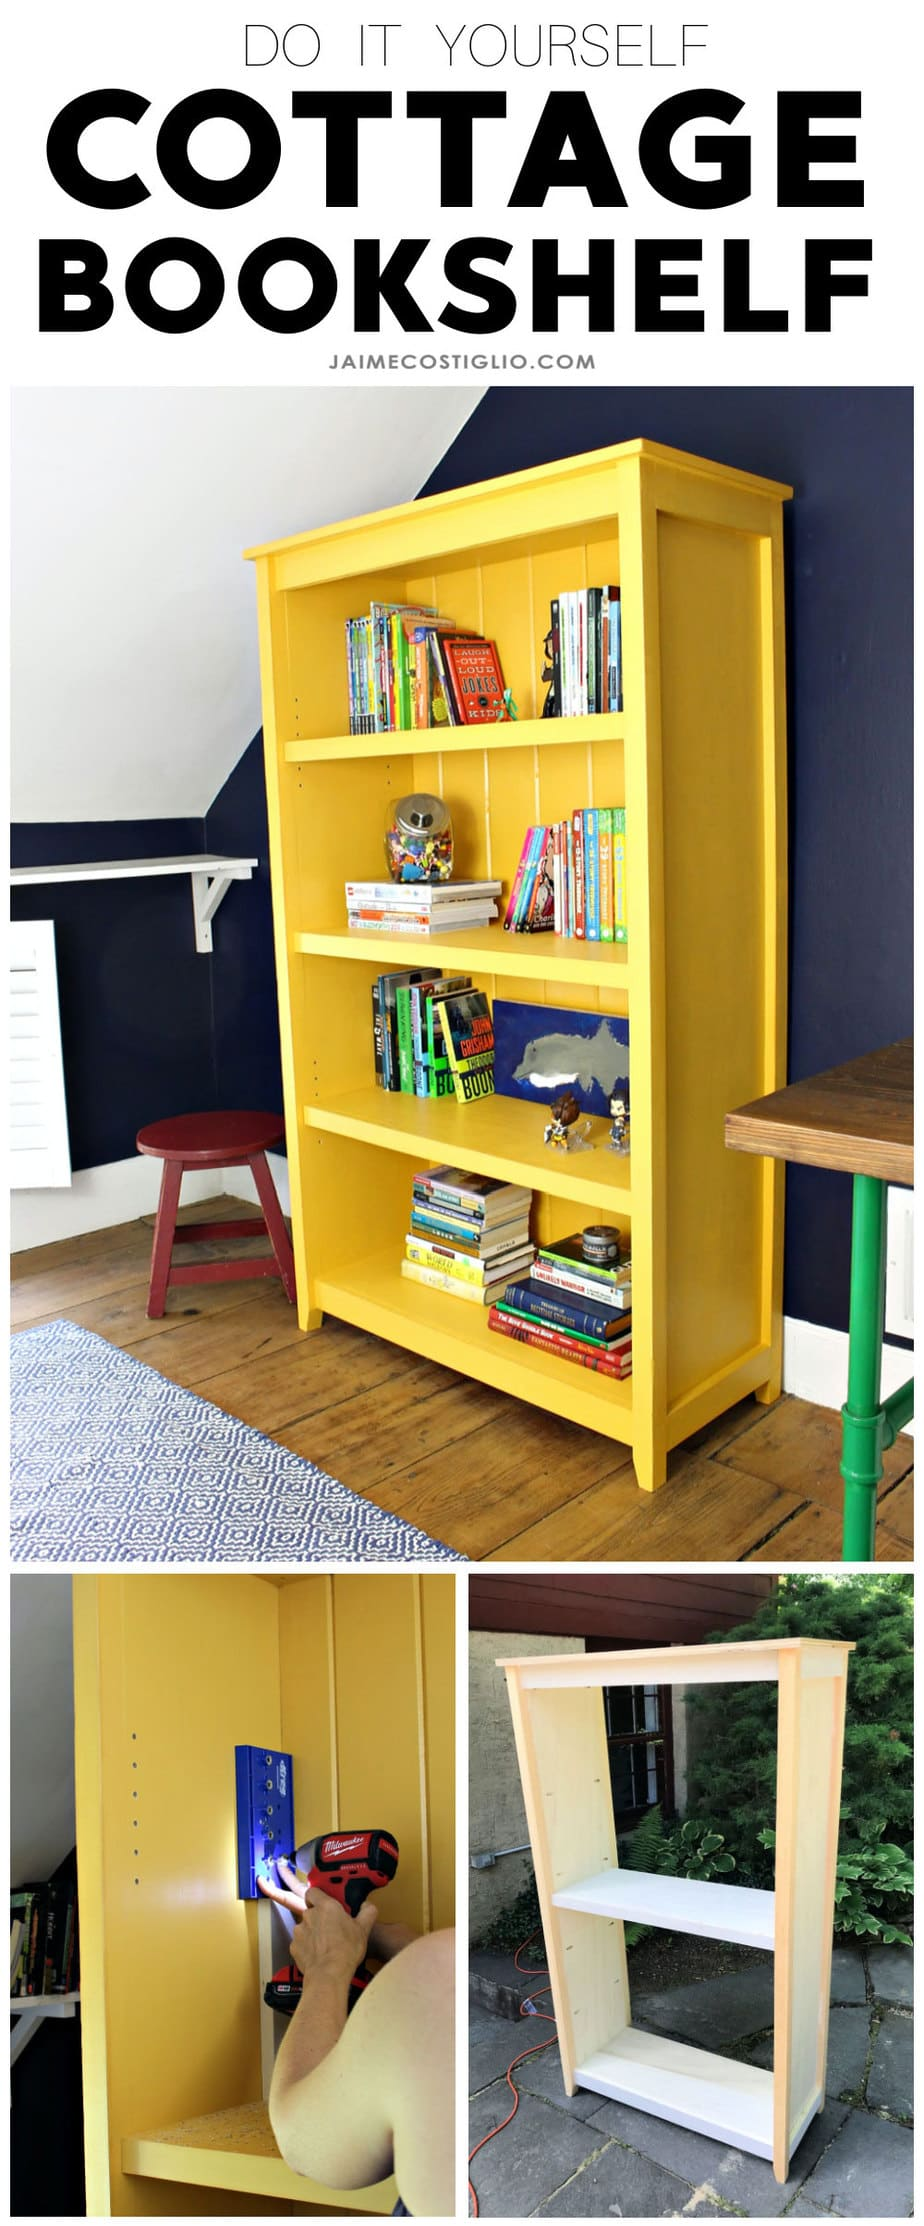 do it yourself cottage bookshelf